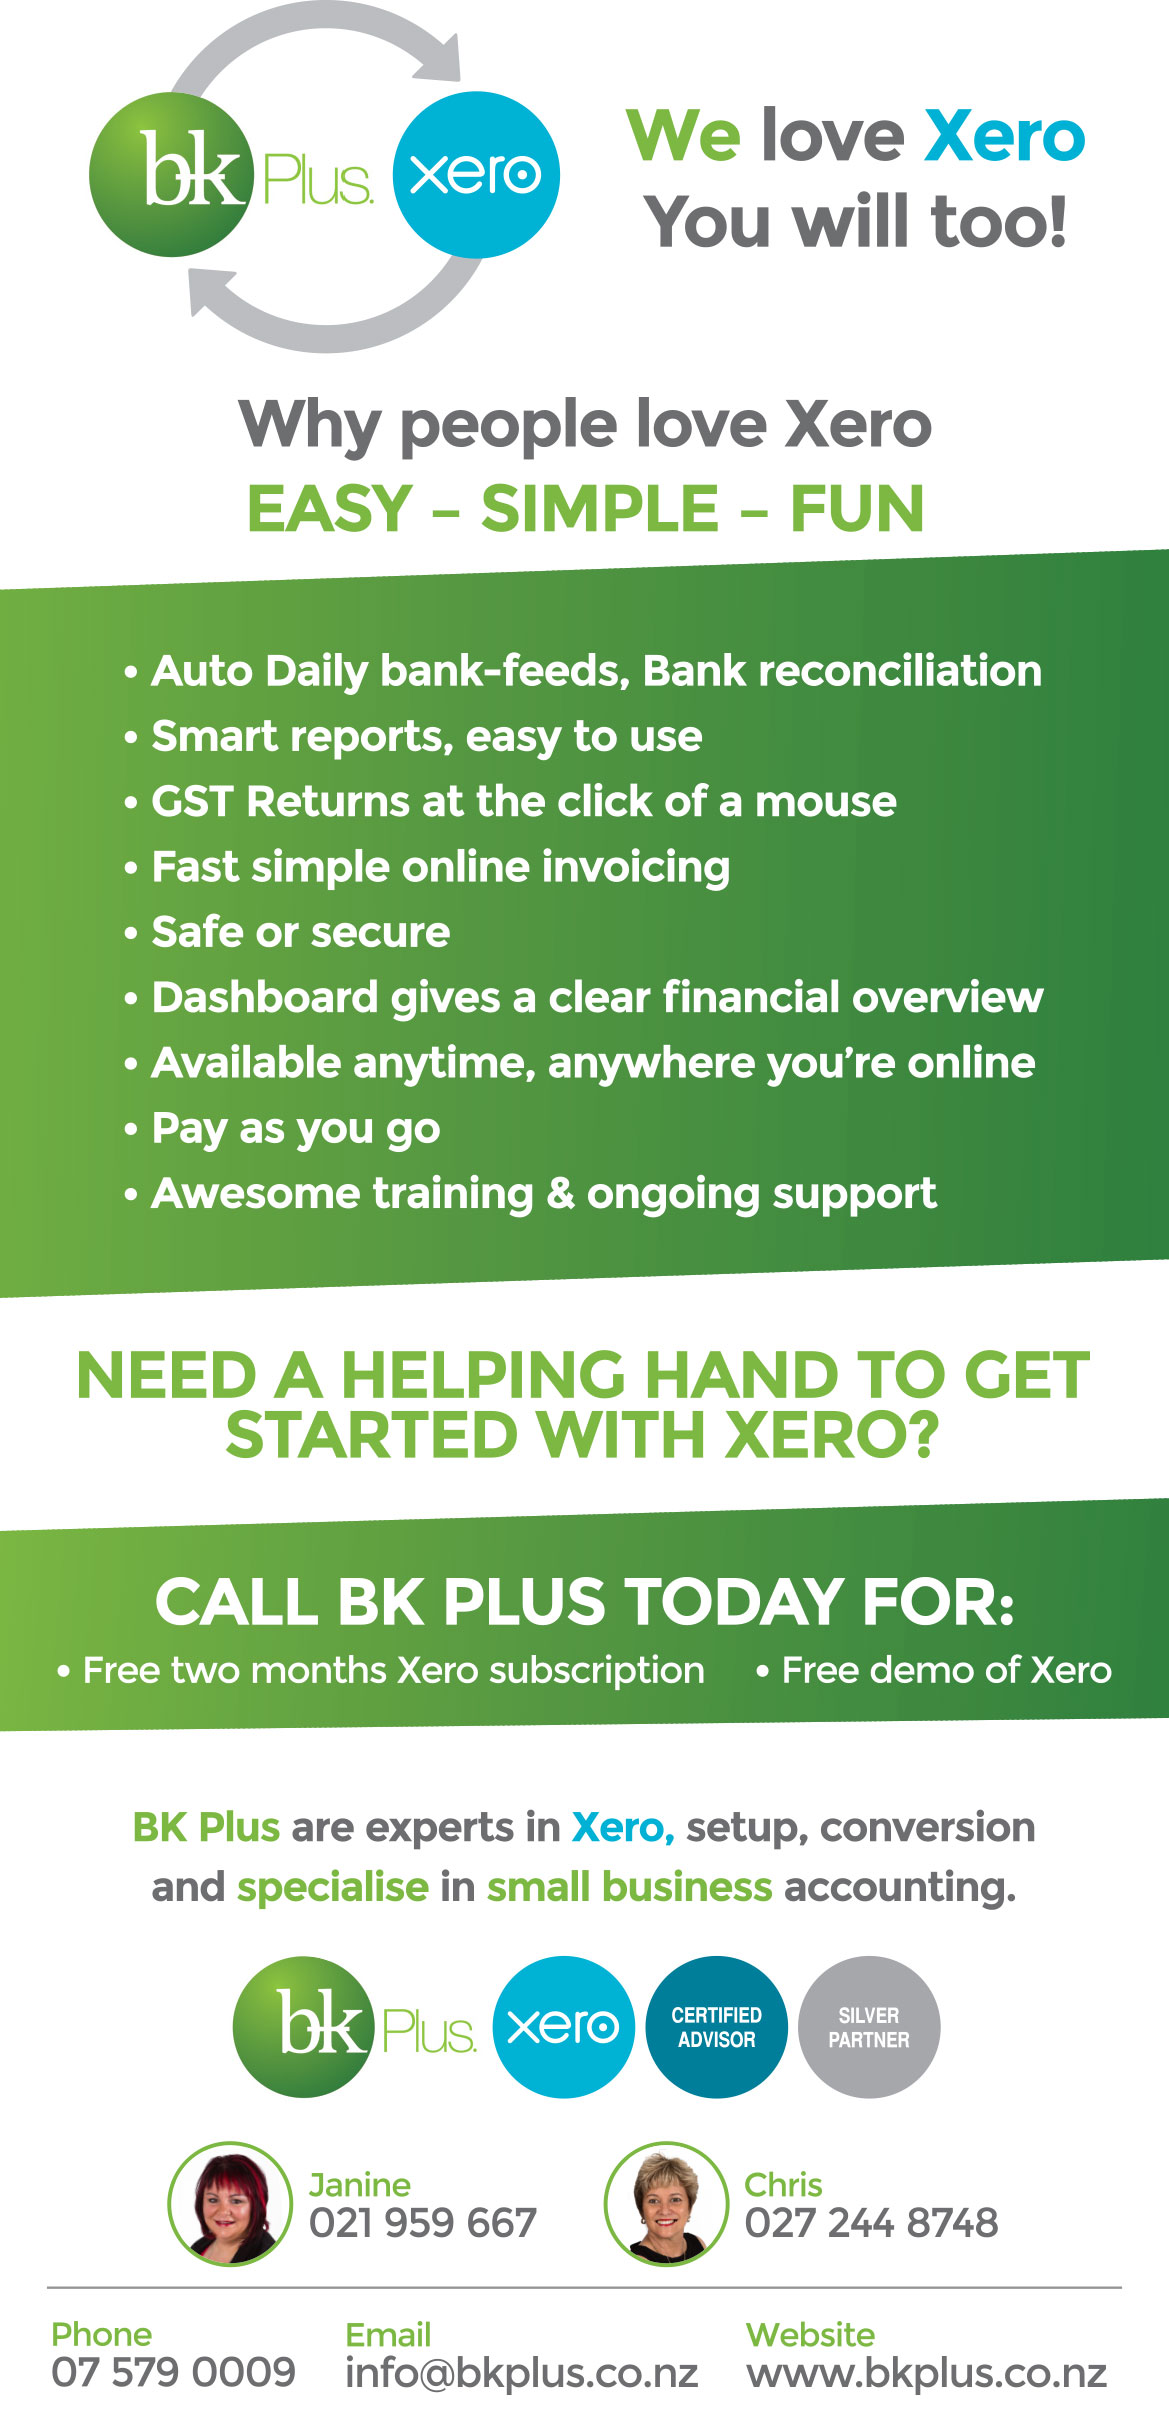 BK-Plus-Xero---We-love-it!-You-will-too